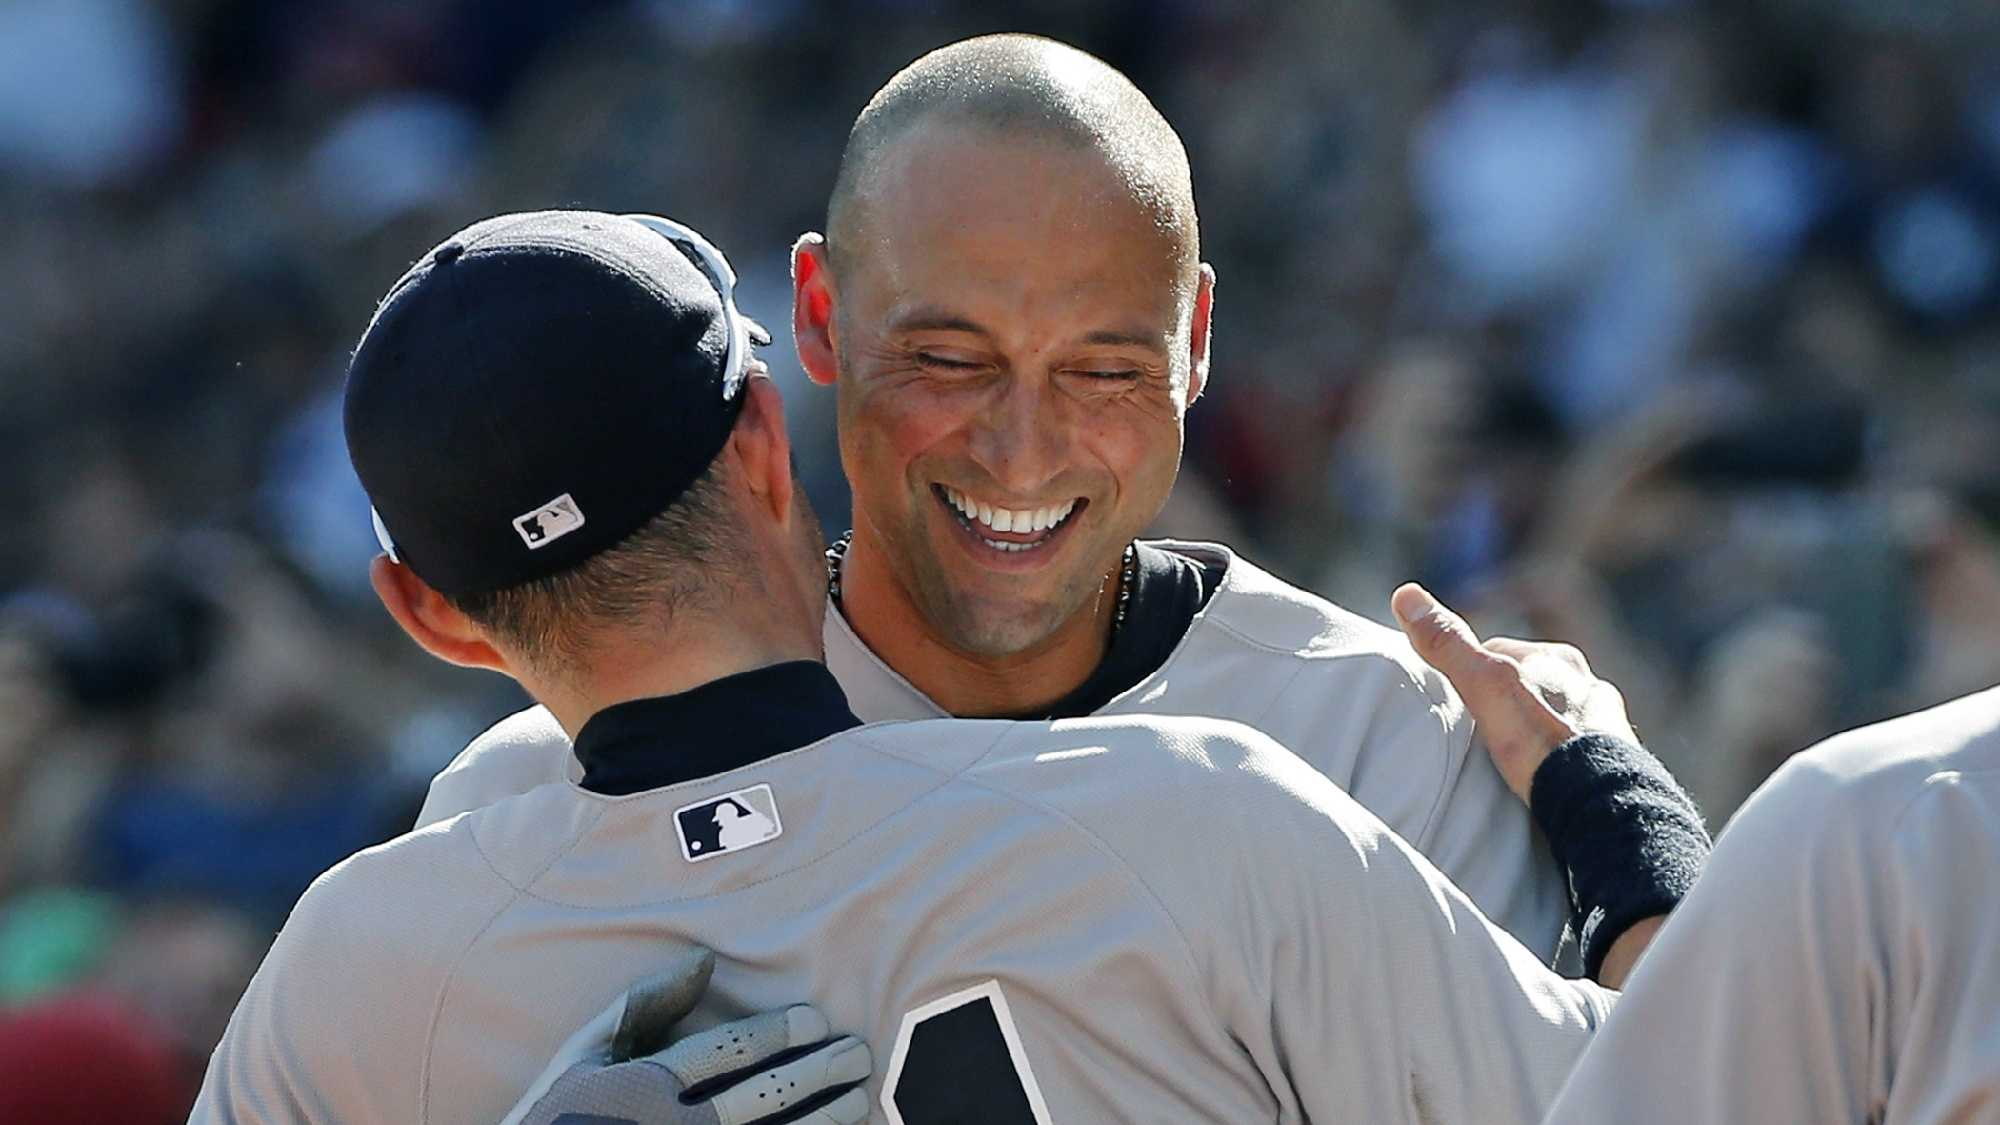 Jeter hugs teammate Ichiro Suzuki after coming out of the baseball game.